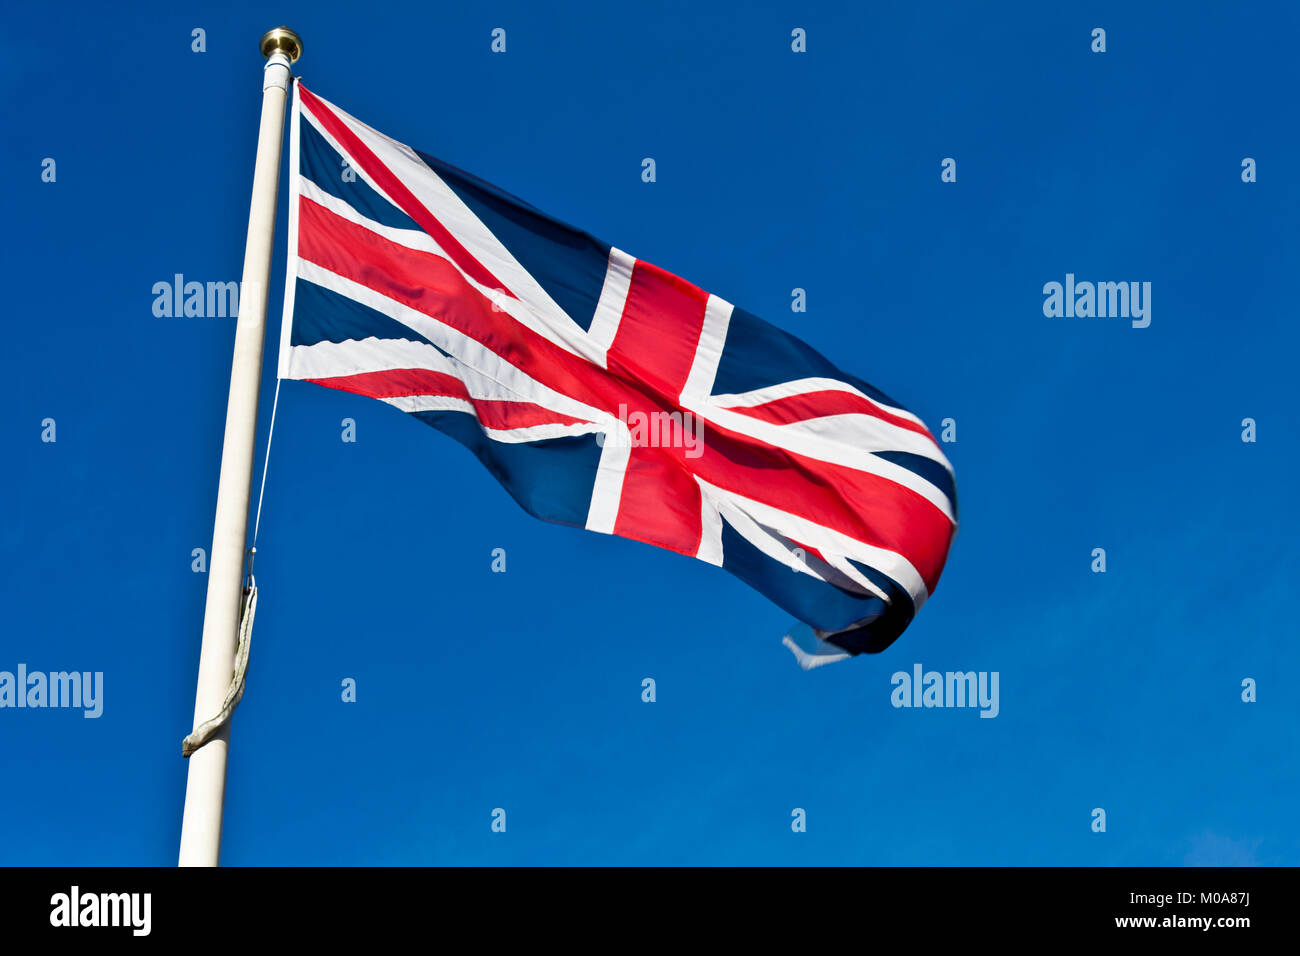 Union Flag of the United Kingdom flying in the breeze - Stock Image